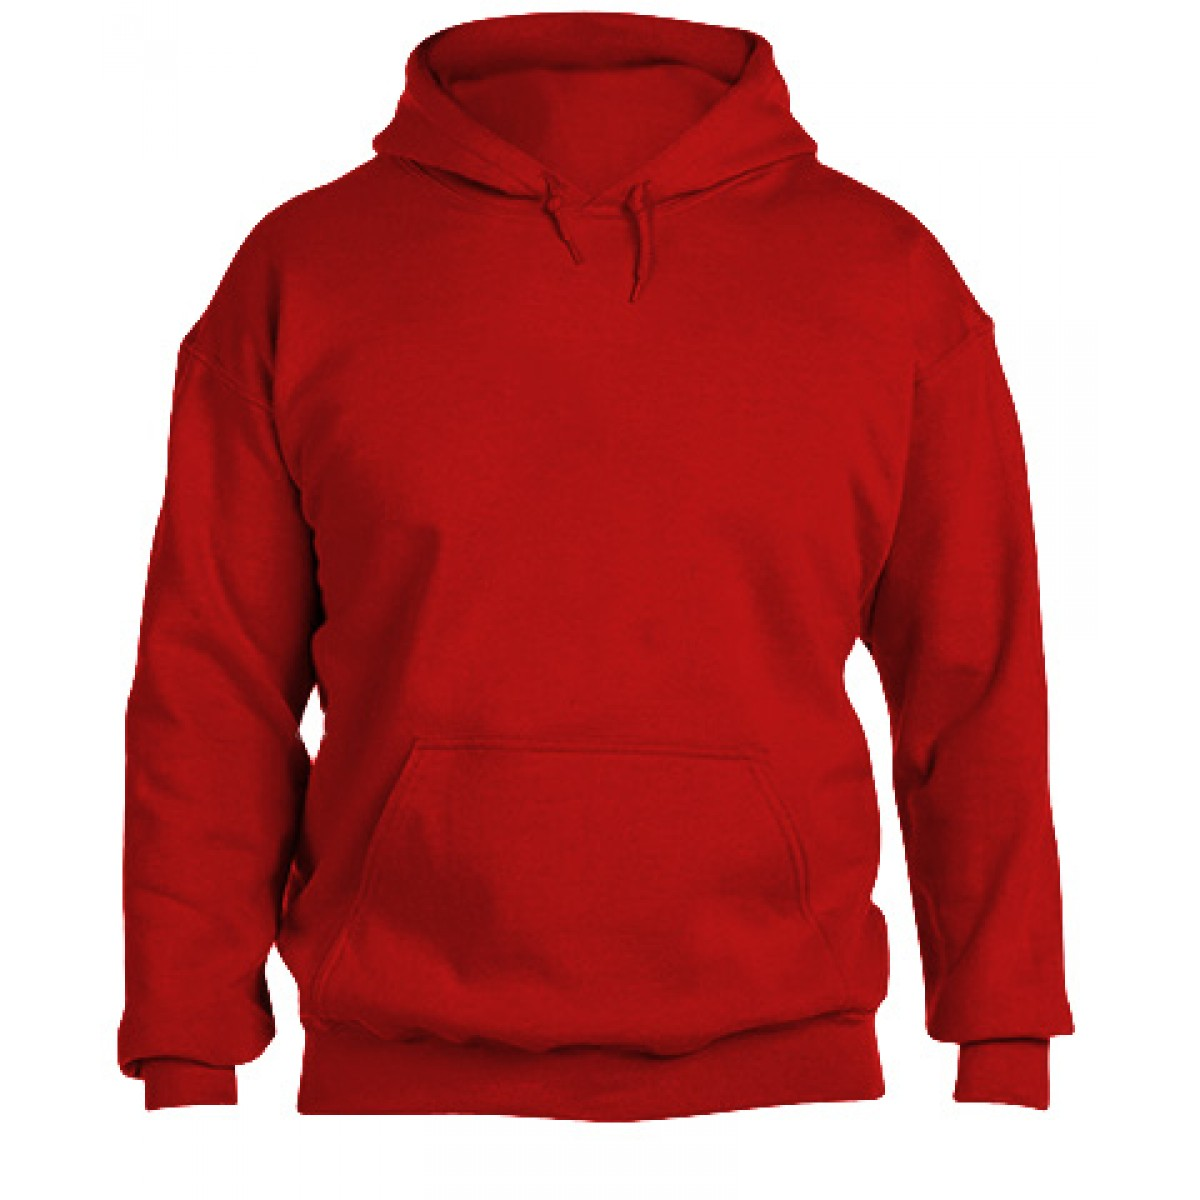 Hooded Sweatshirt 50/50 Heavy Blend -Red-XL